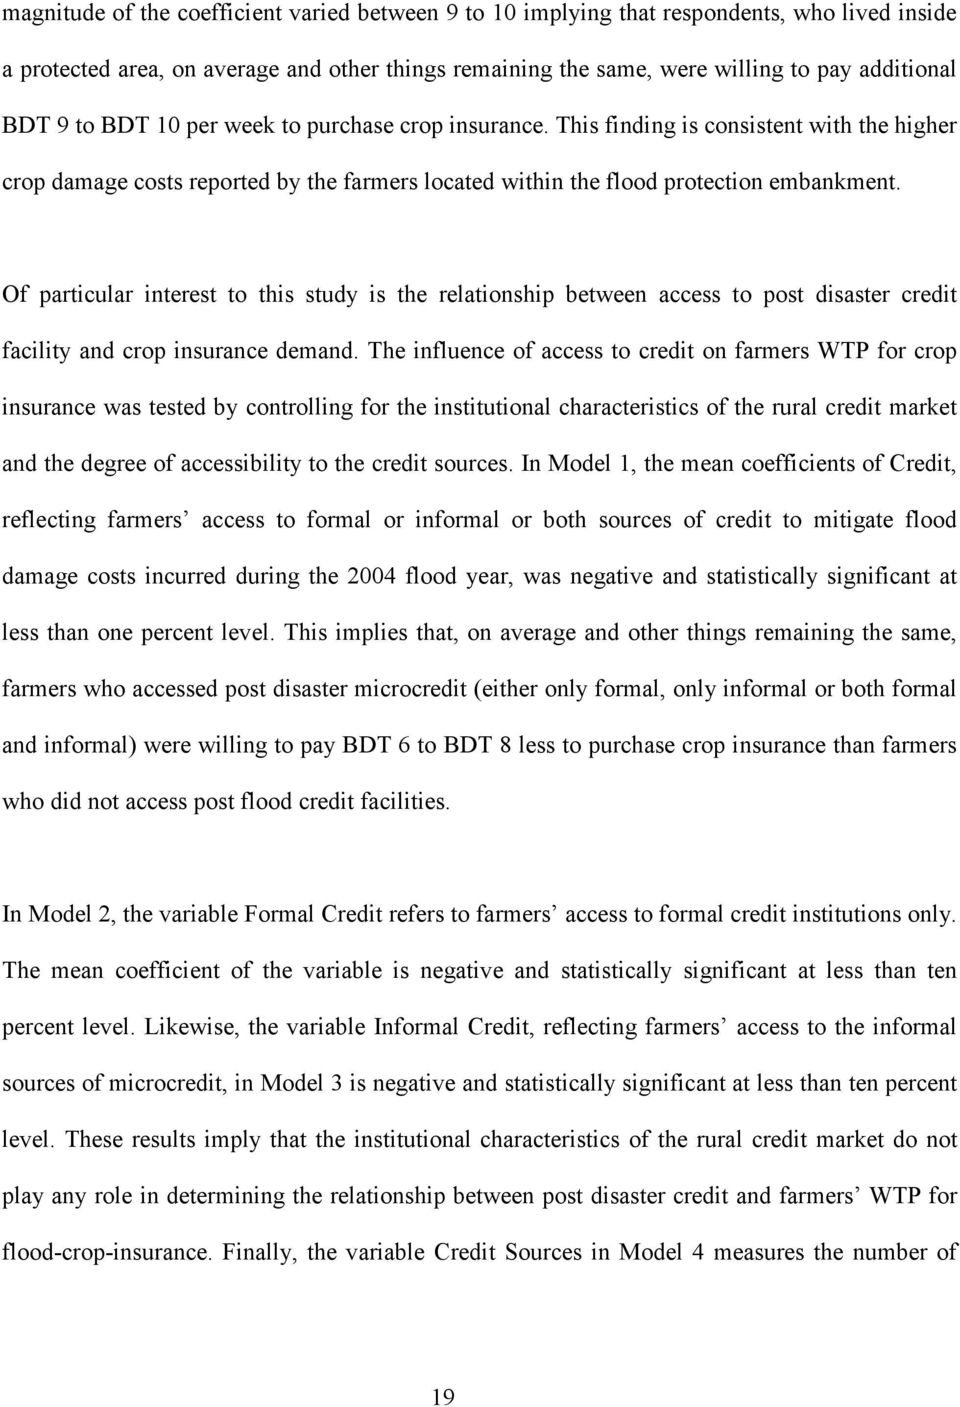 Of particular interest to this study is the relationship between access to post disaster credit facility and crop insurance demand.